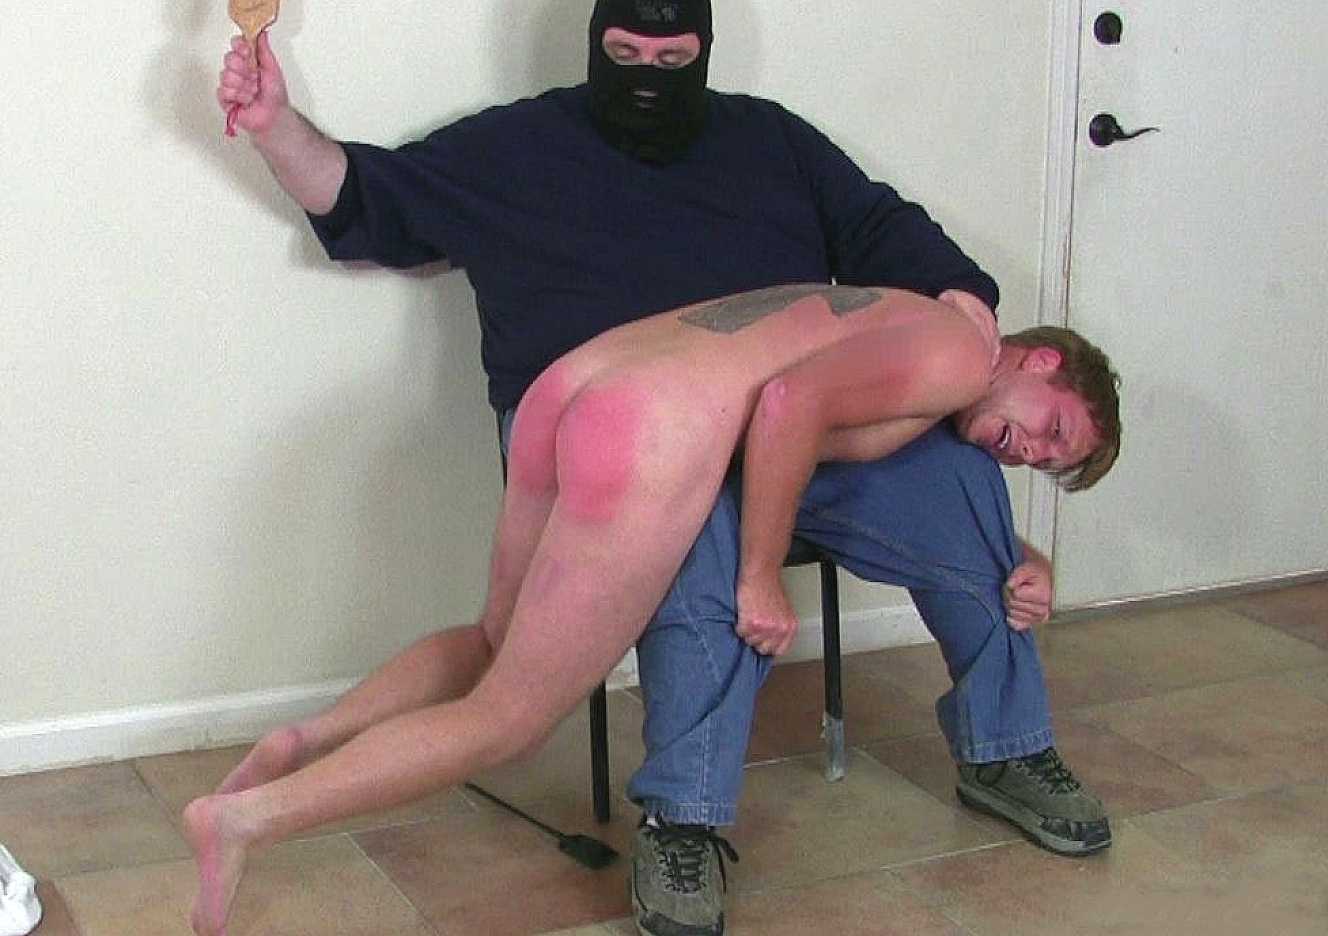 content/120426104-seans-first-spanking-finale/0.jpg